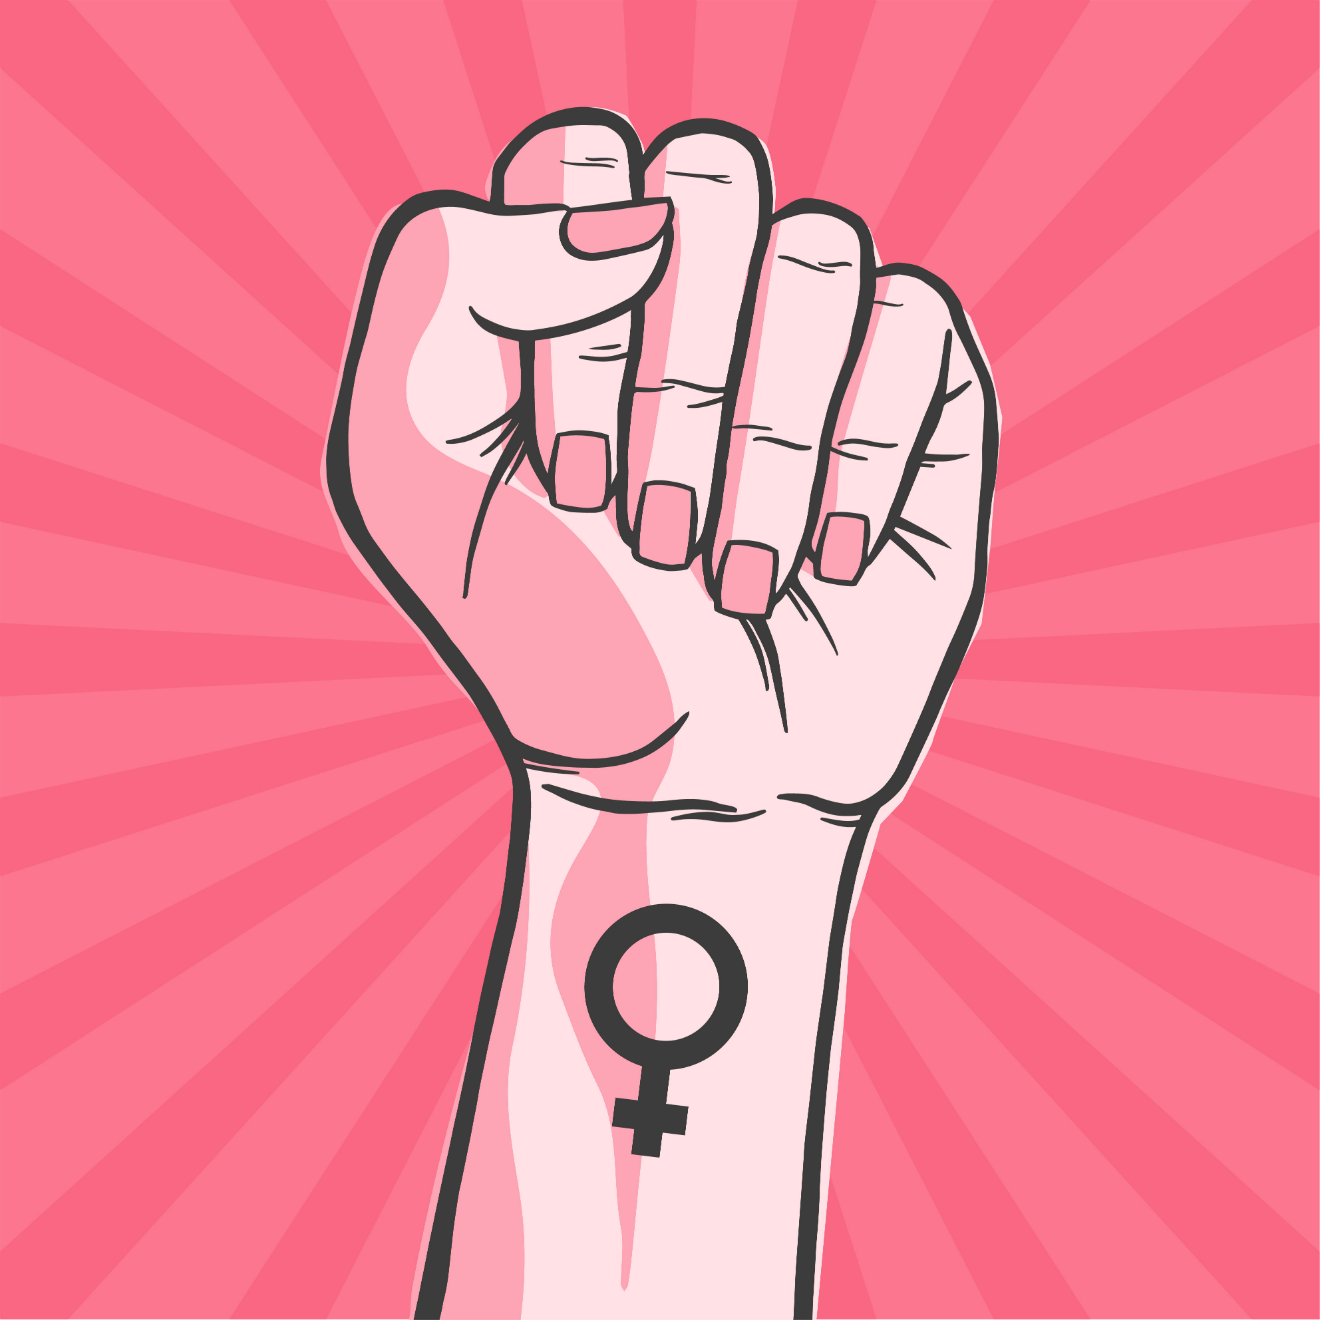 woman fist female gender tattoo illustration pink background